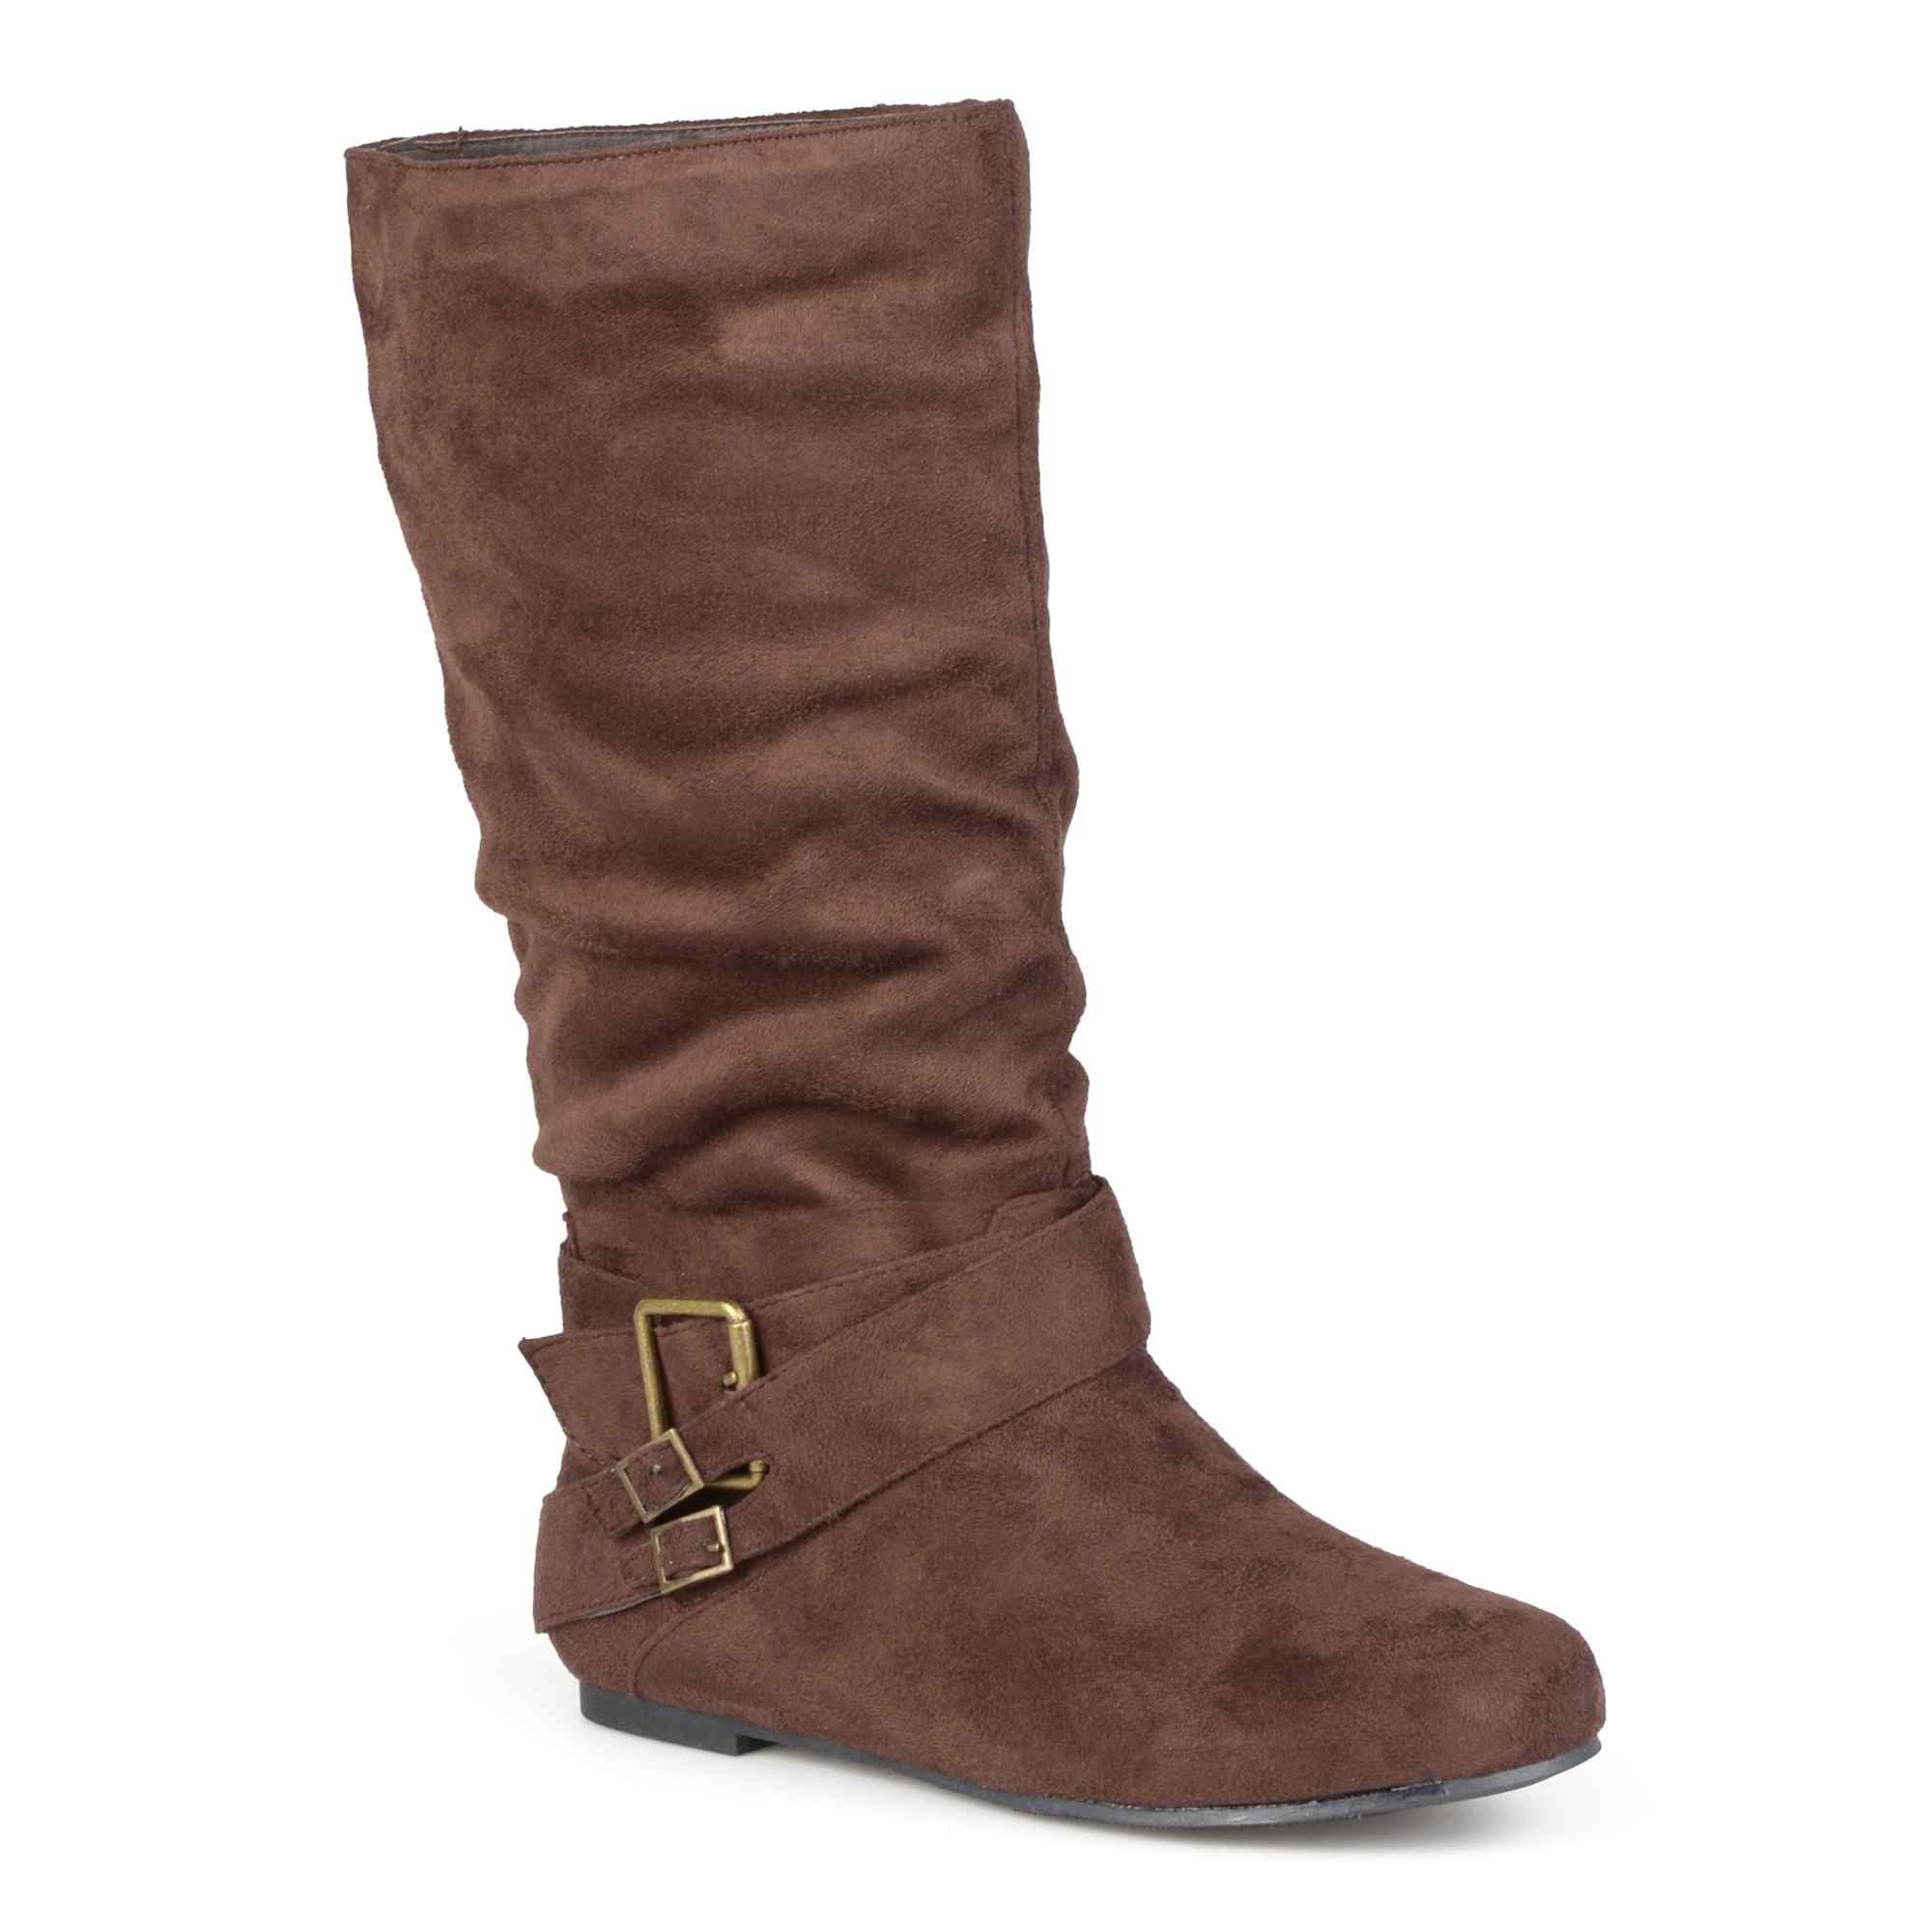 Journee Collection Shelley 6 Buckle-Accented Mid-Rise Wide Calf Slouch Boots